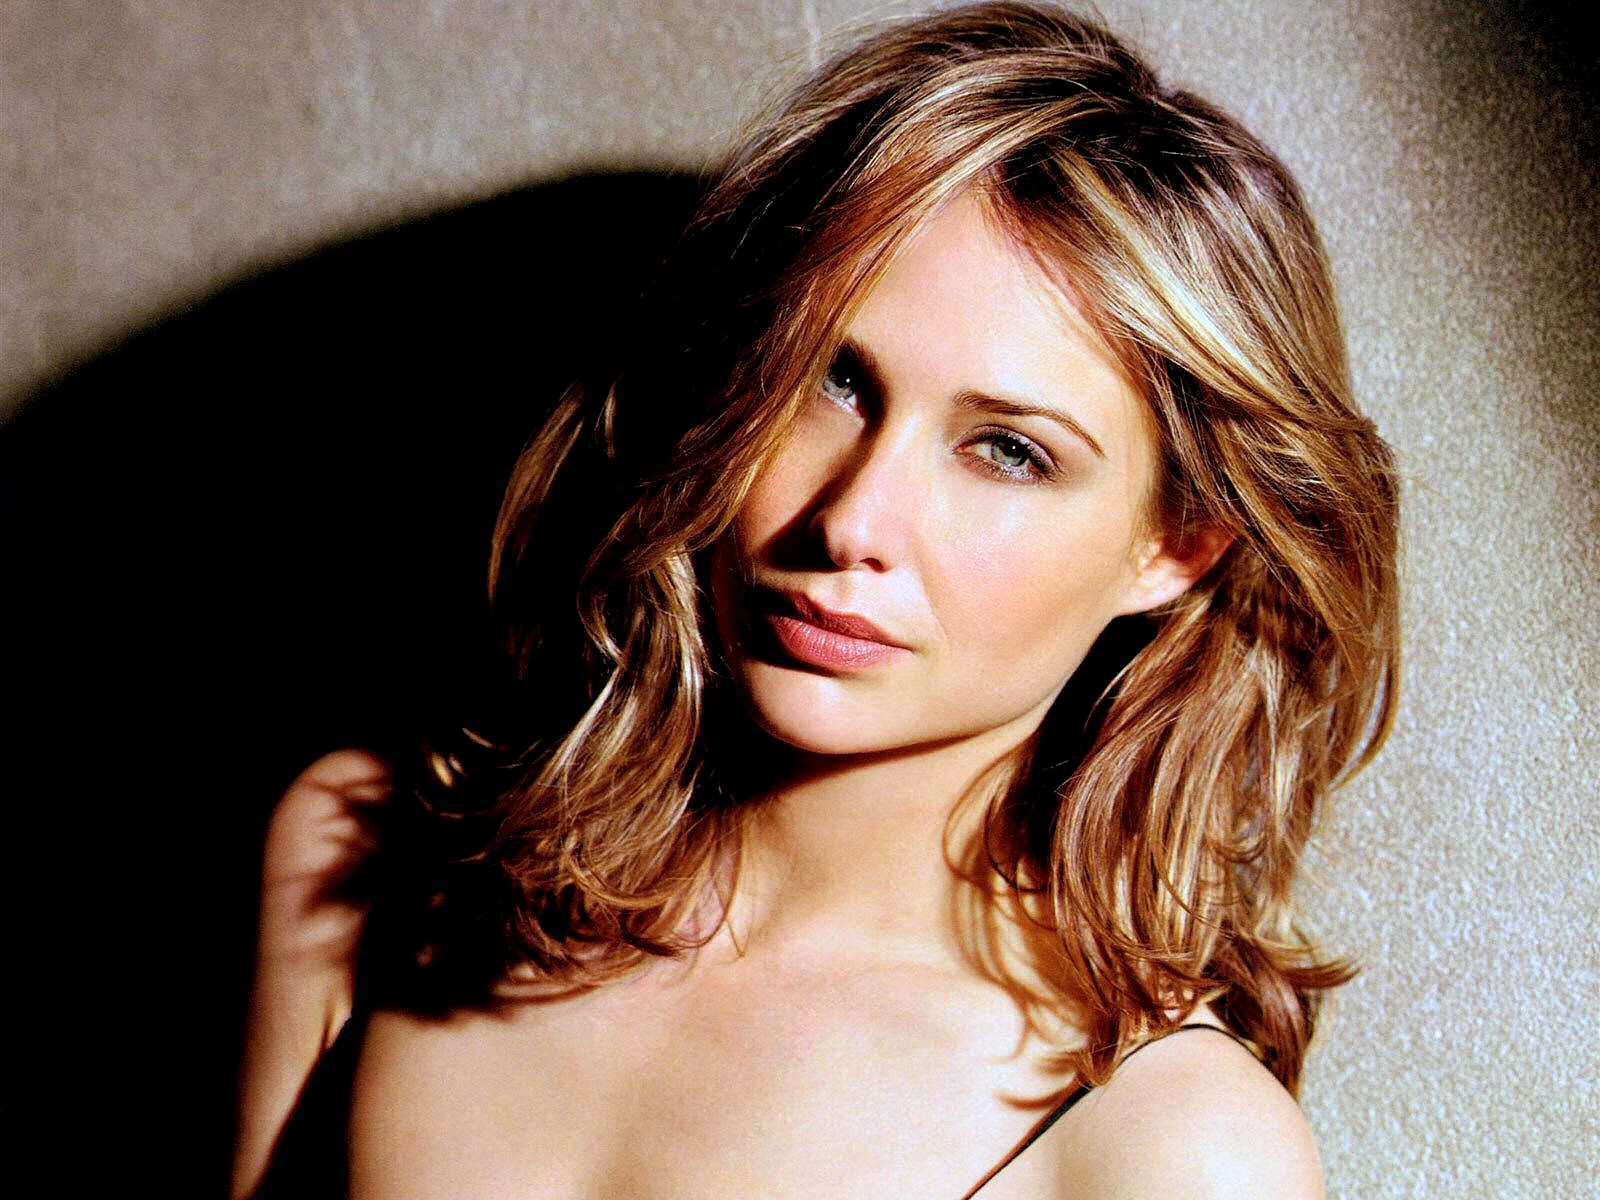 Claire Forlani Wallpaper